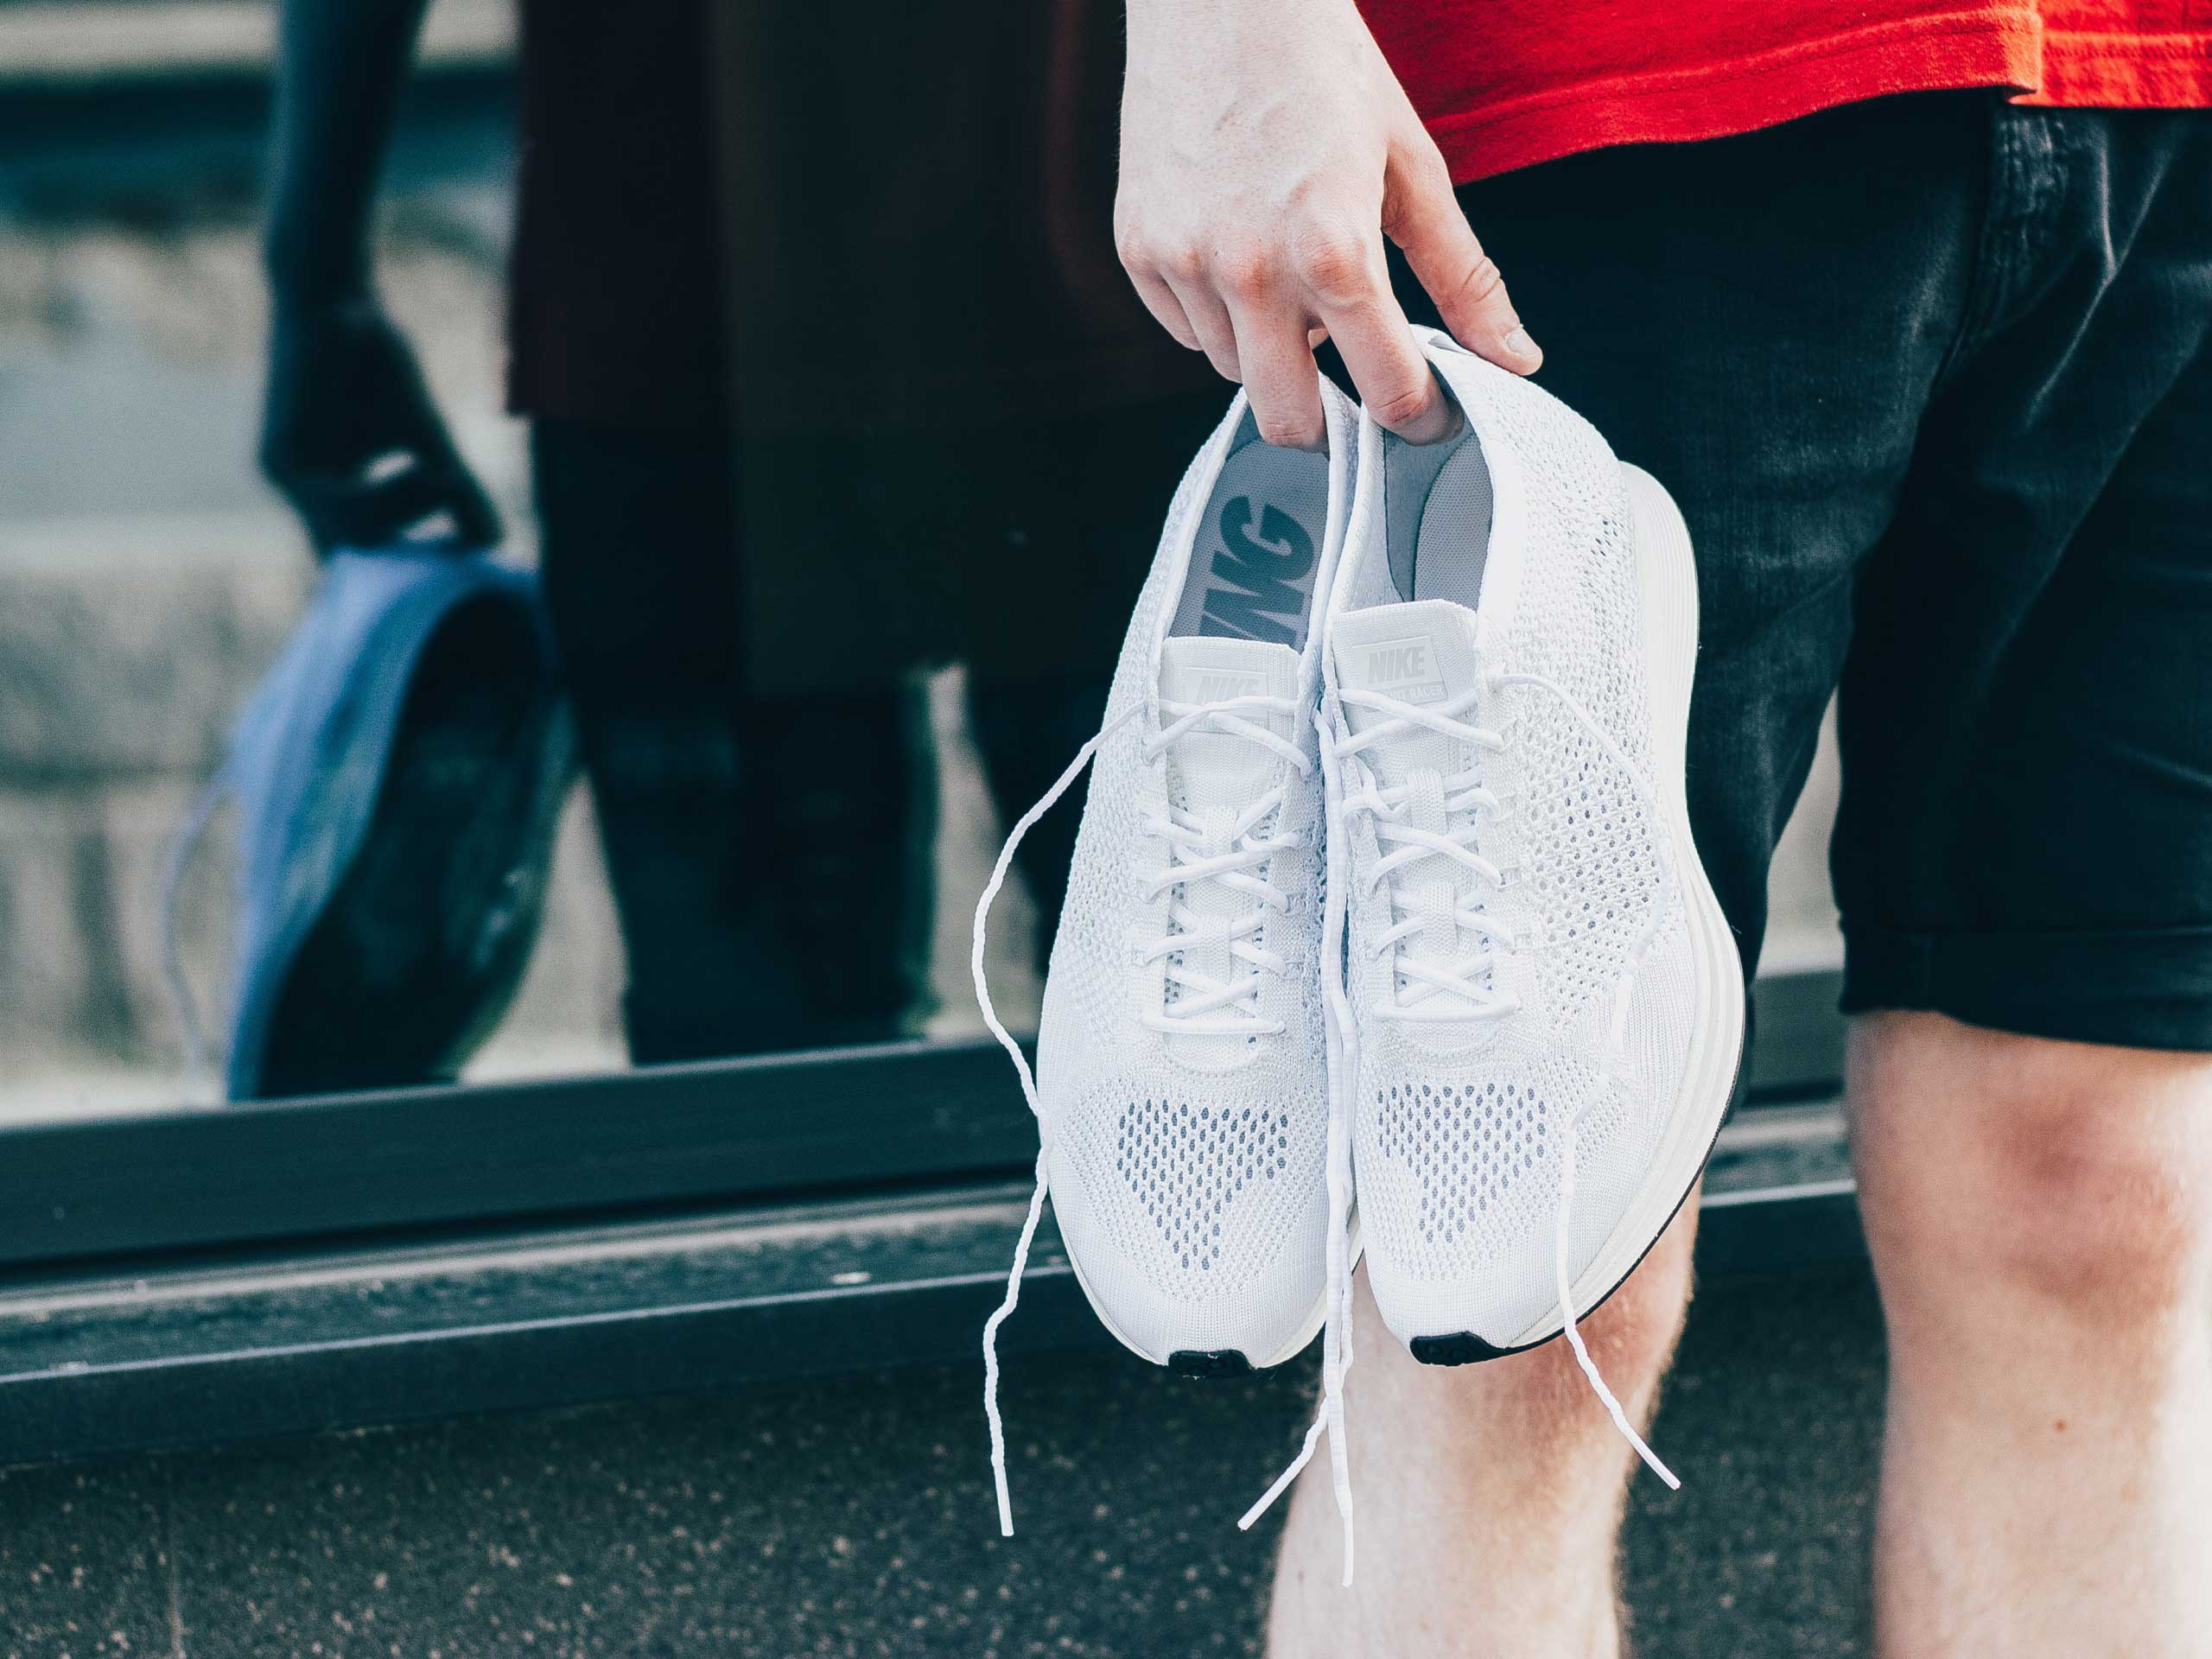 Person holding running shoes